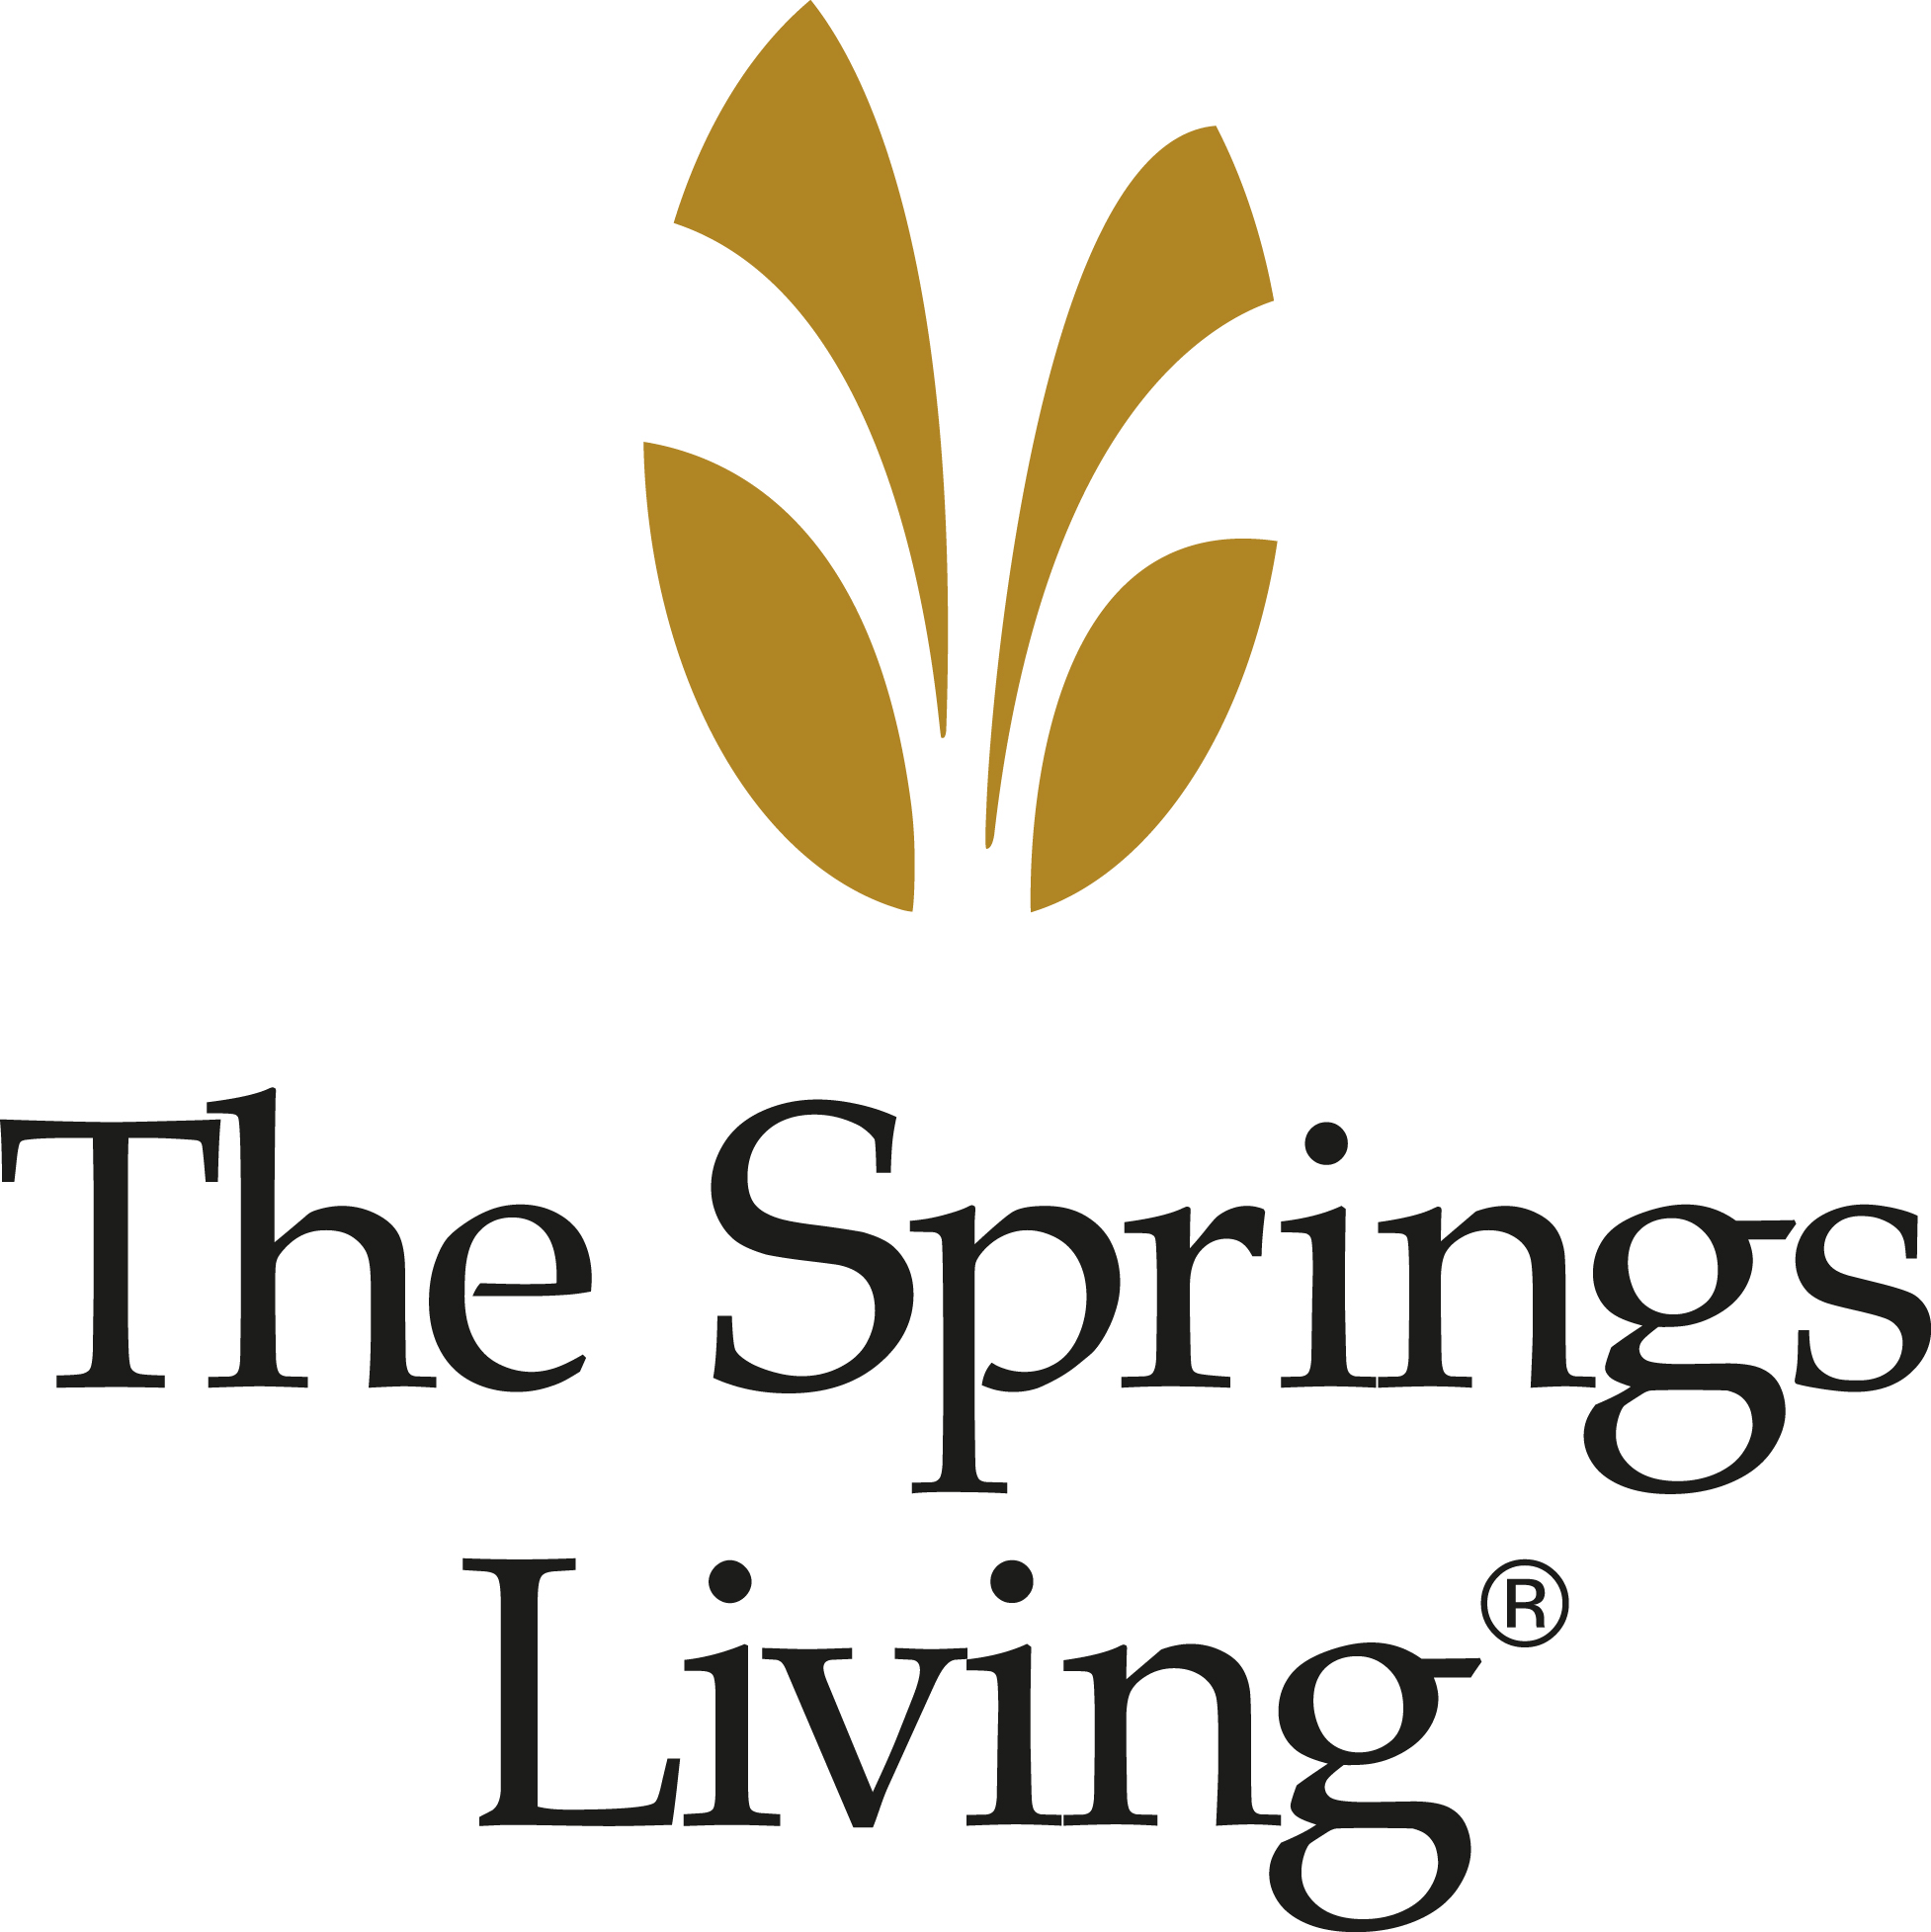 #4 The Springs Logo (Exclusive )